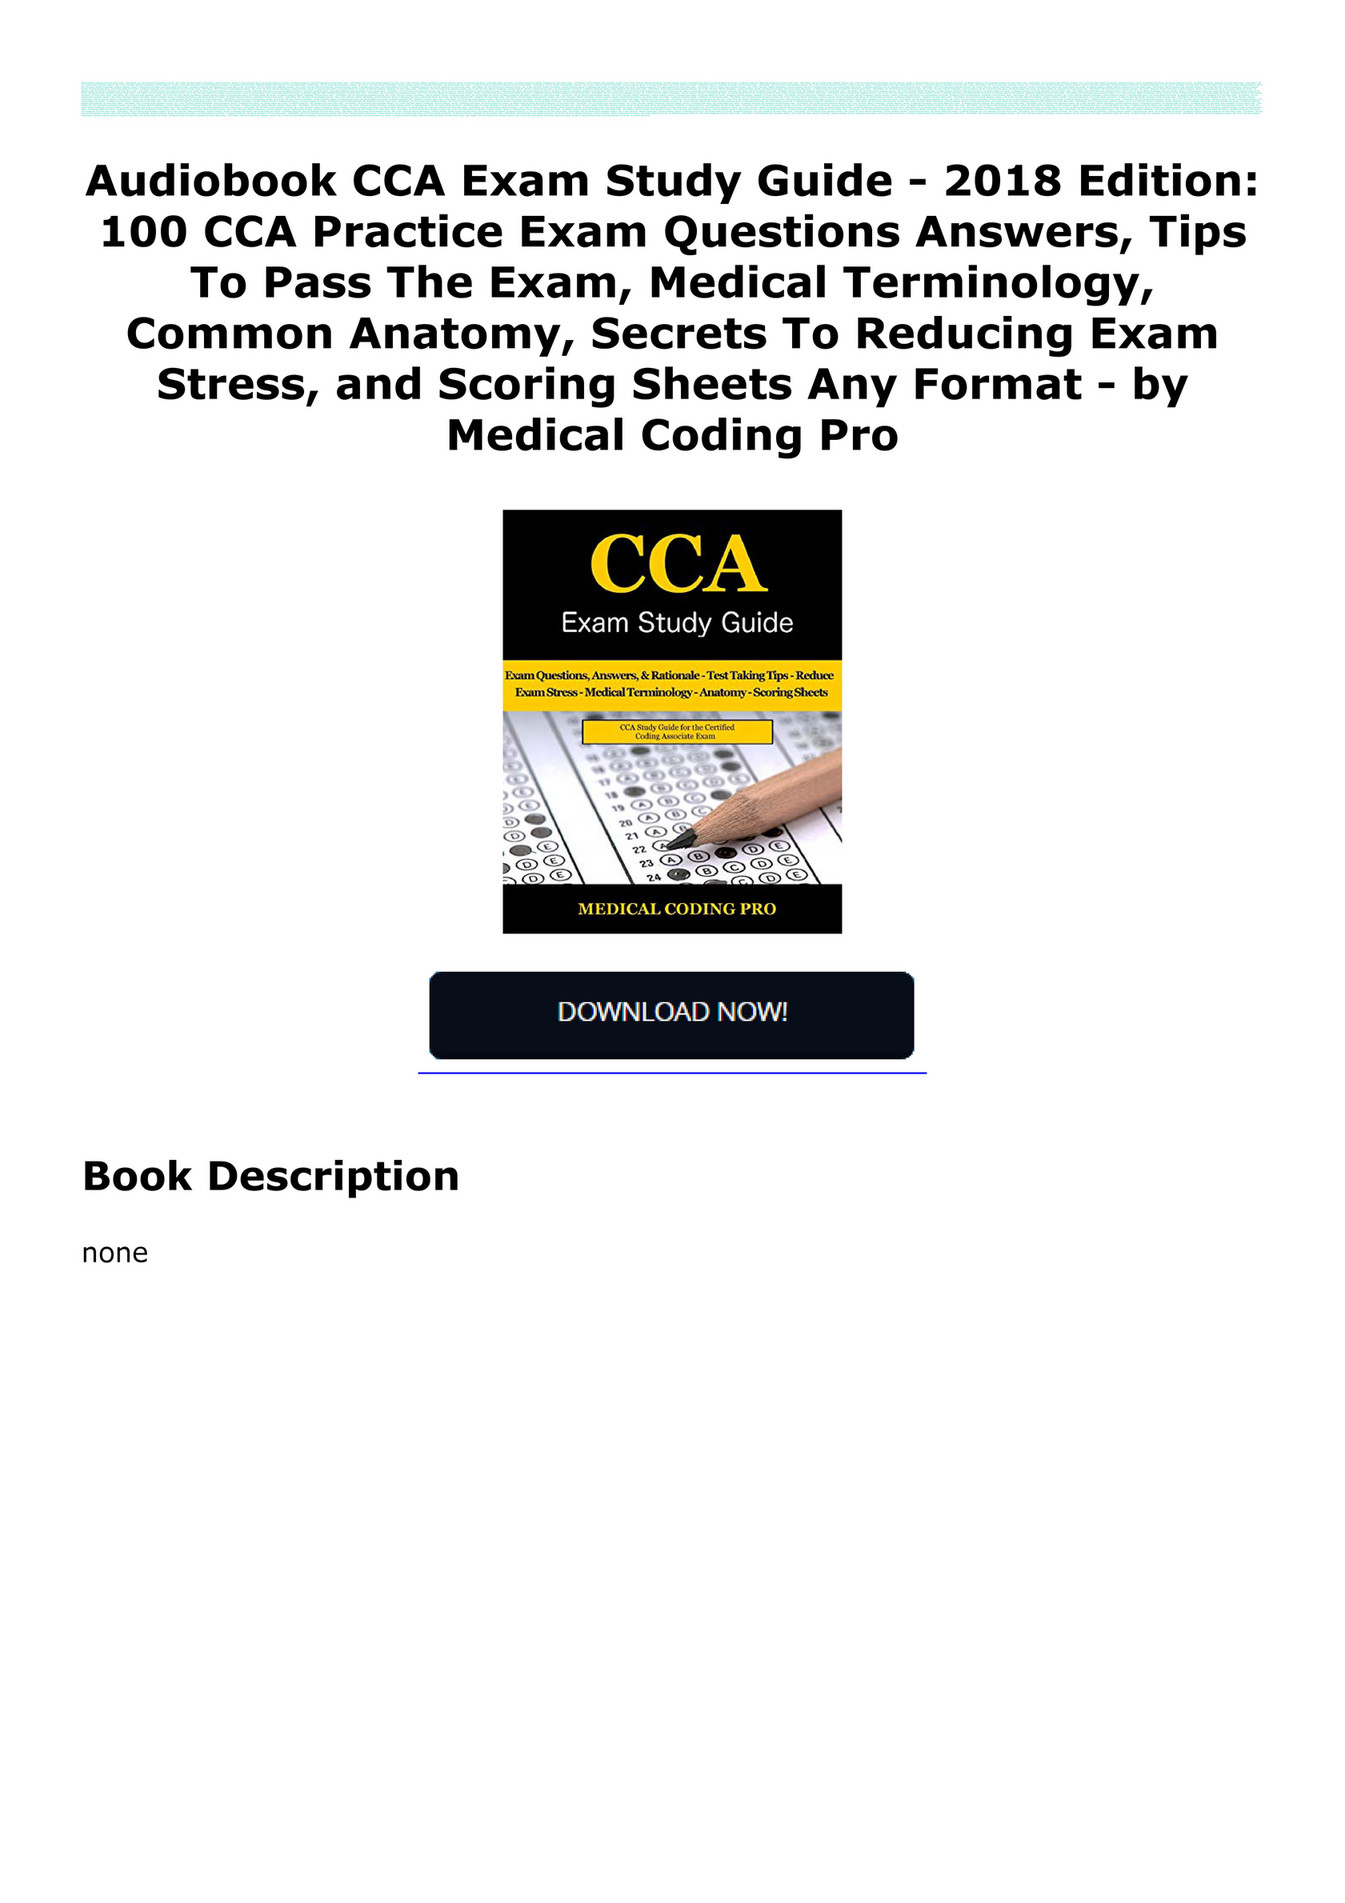 Jakkojulto3er Audiobook Cca Exam Study Guide 2018 Edition 100